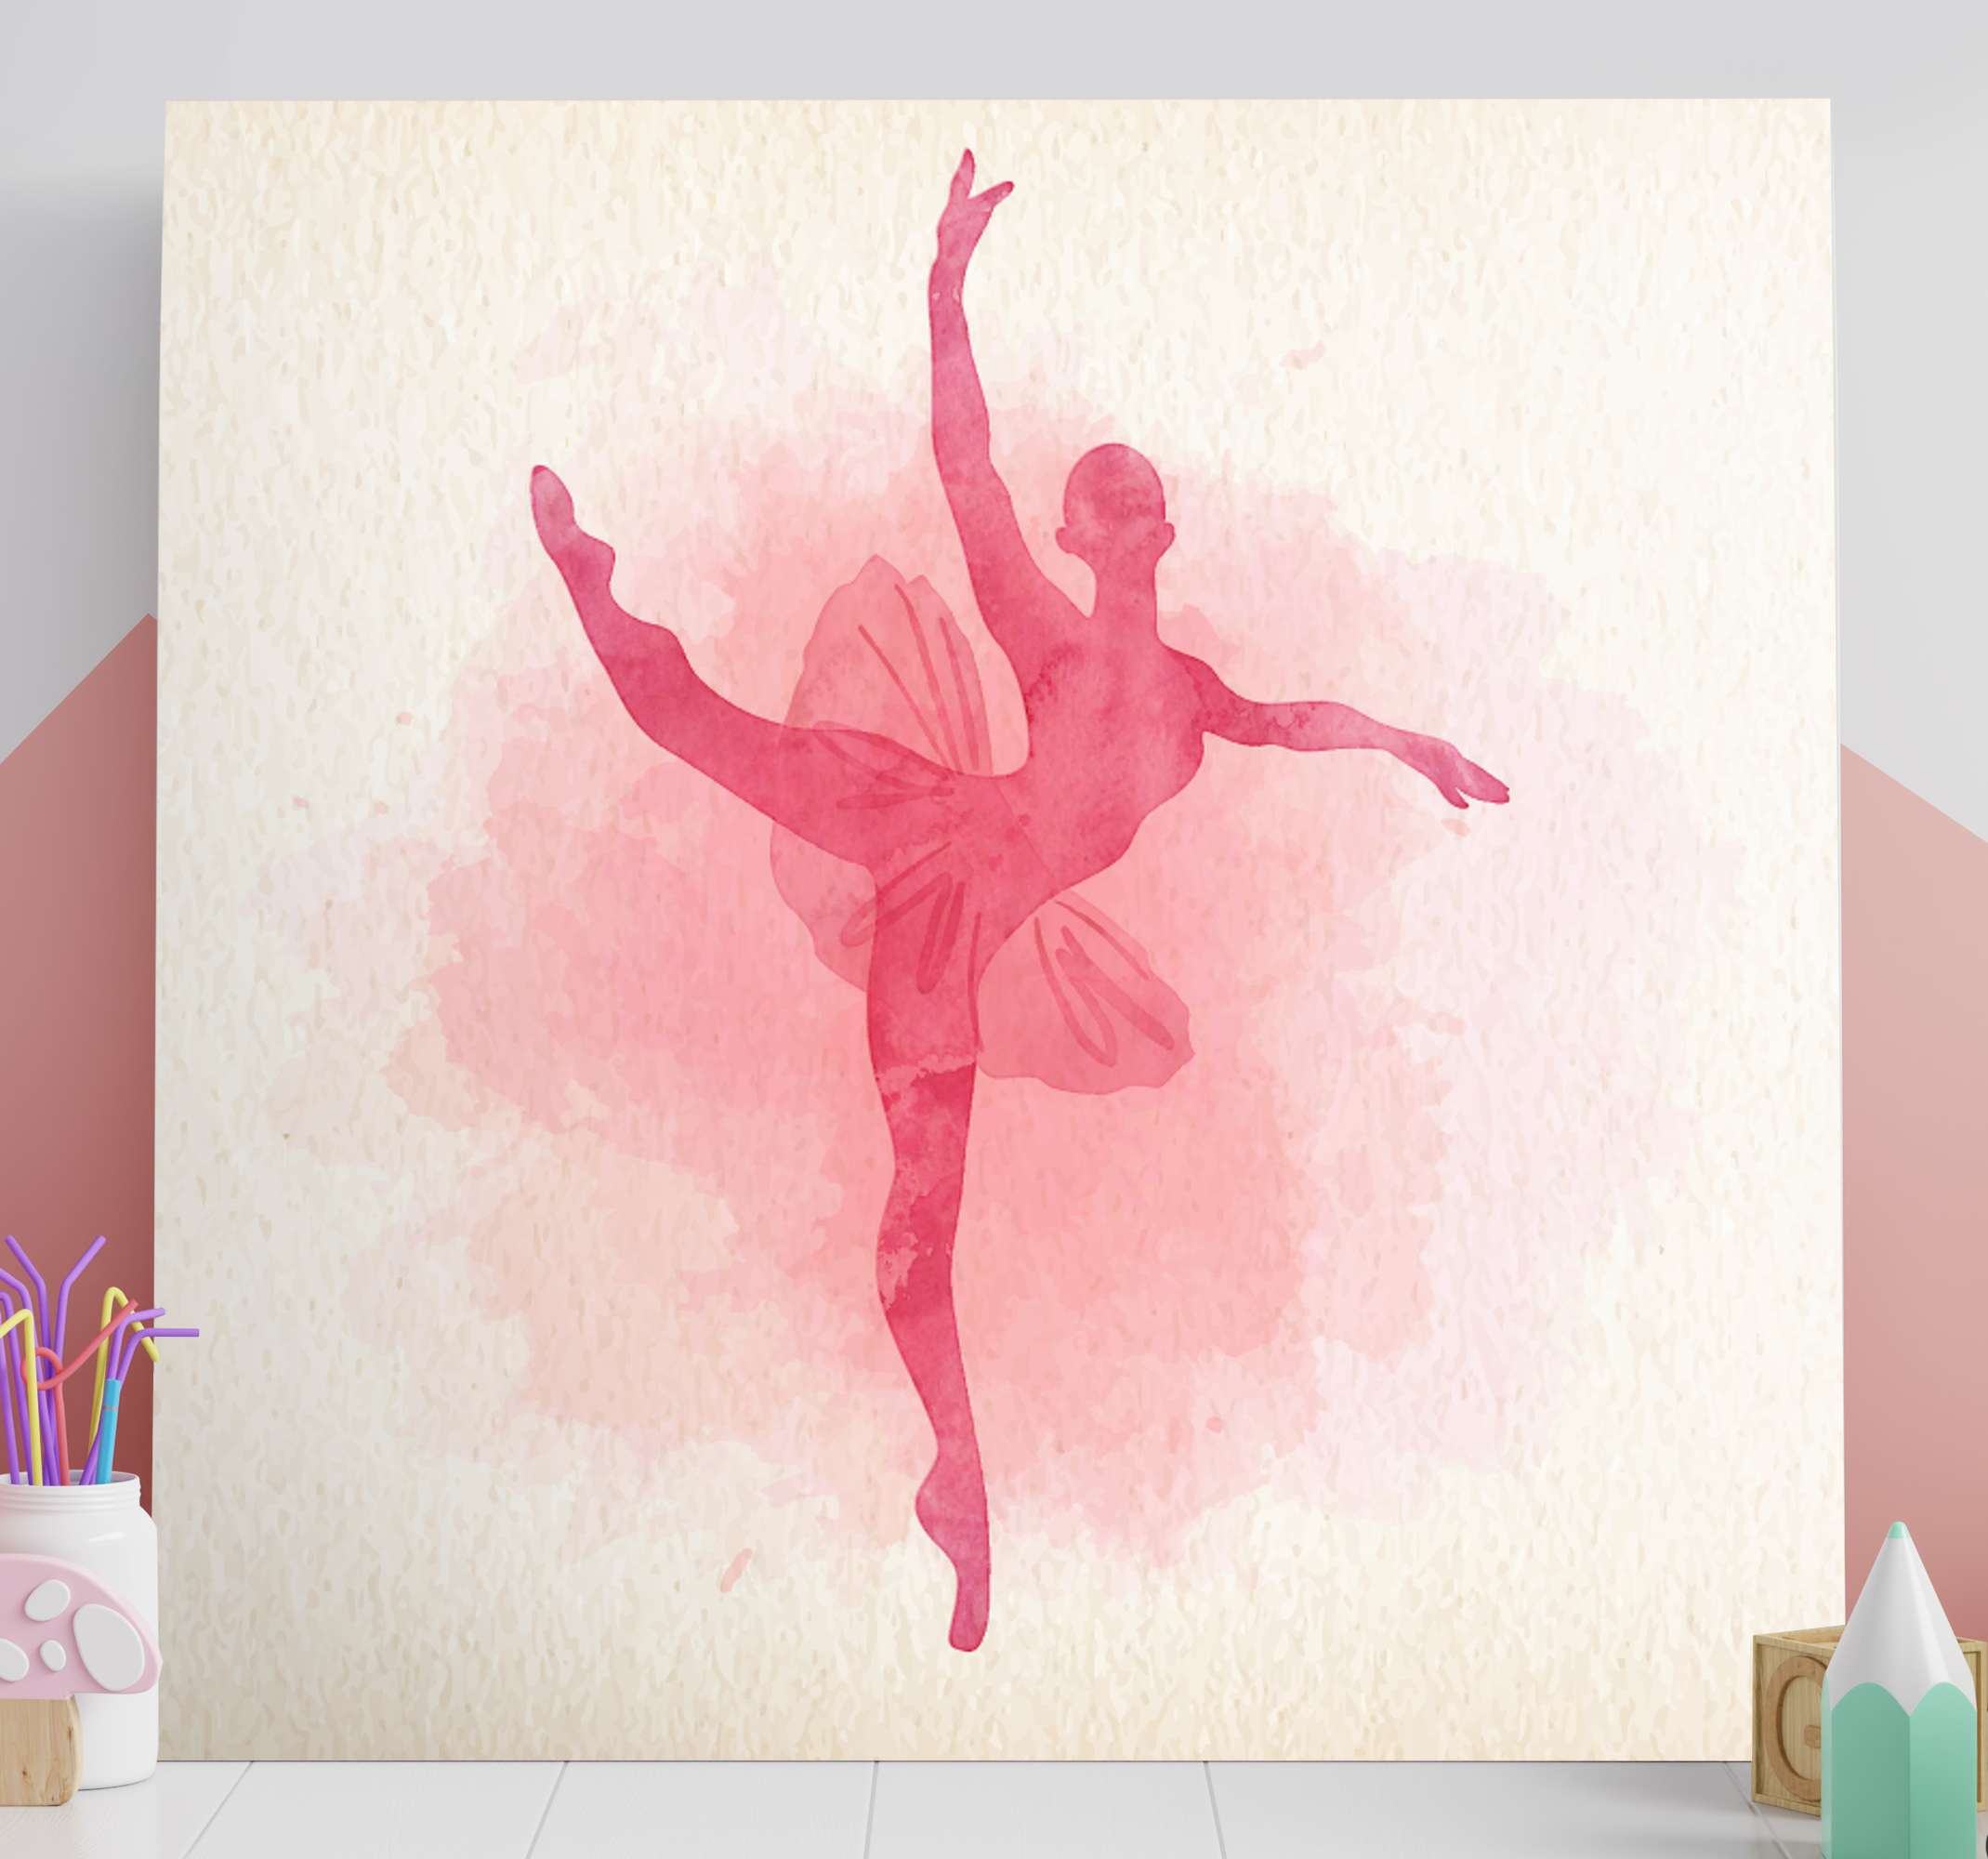 TenStickers. Multicolour Ballerinae canvas wall art. This amazing customizable wall art canvas will look amazing in your little girls nursery! It features silouhette of a pink dancer